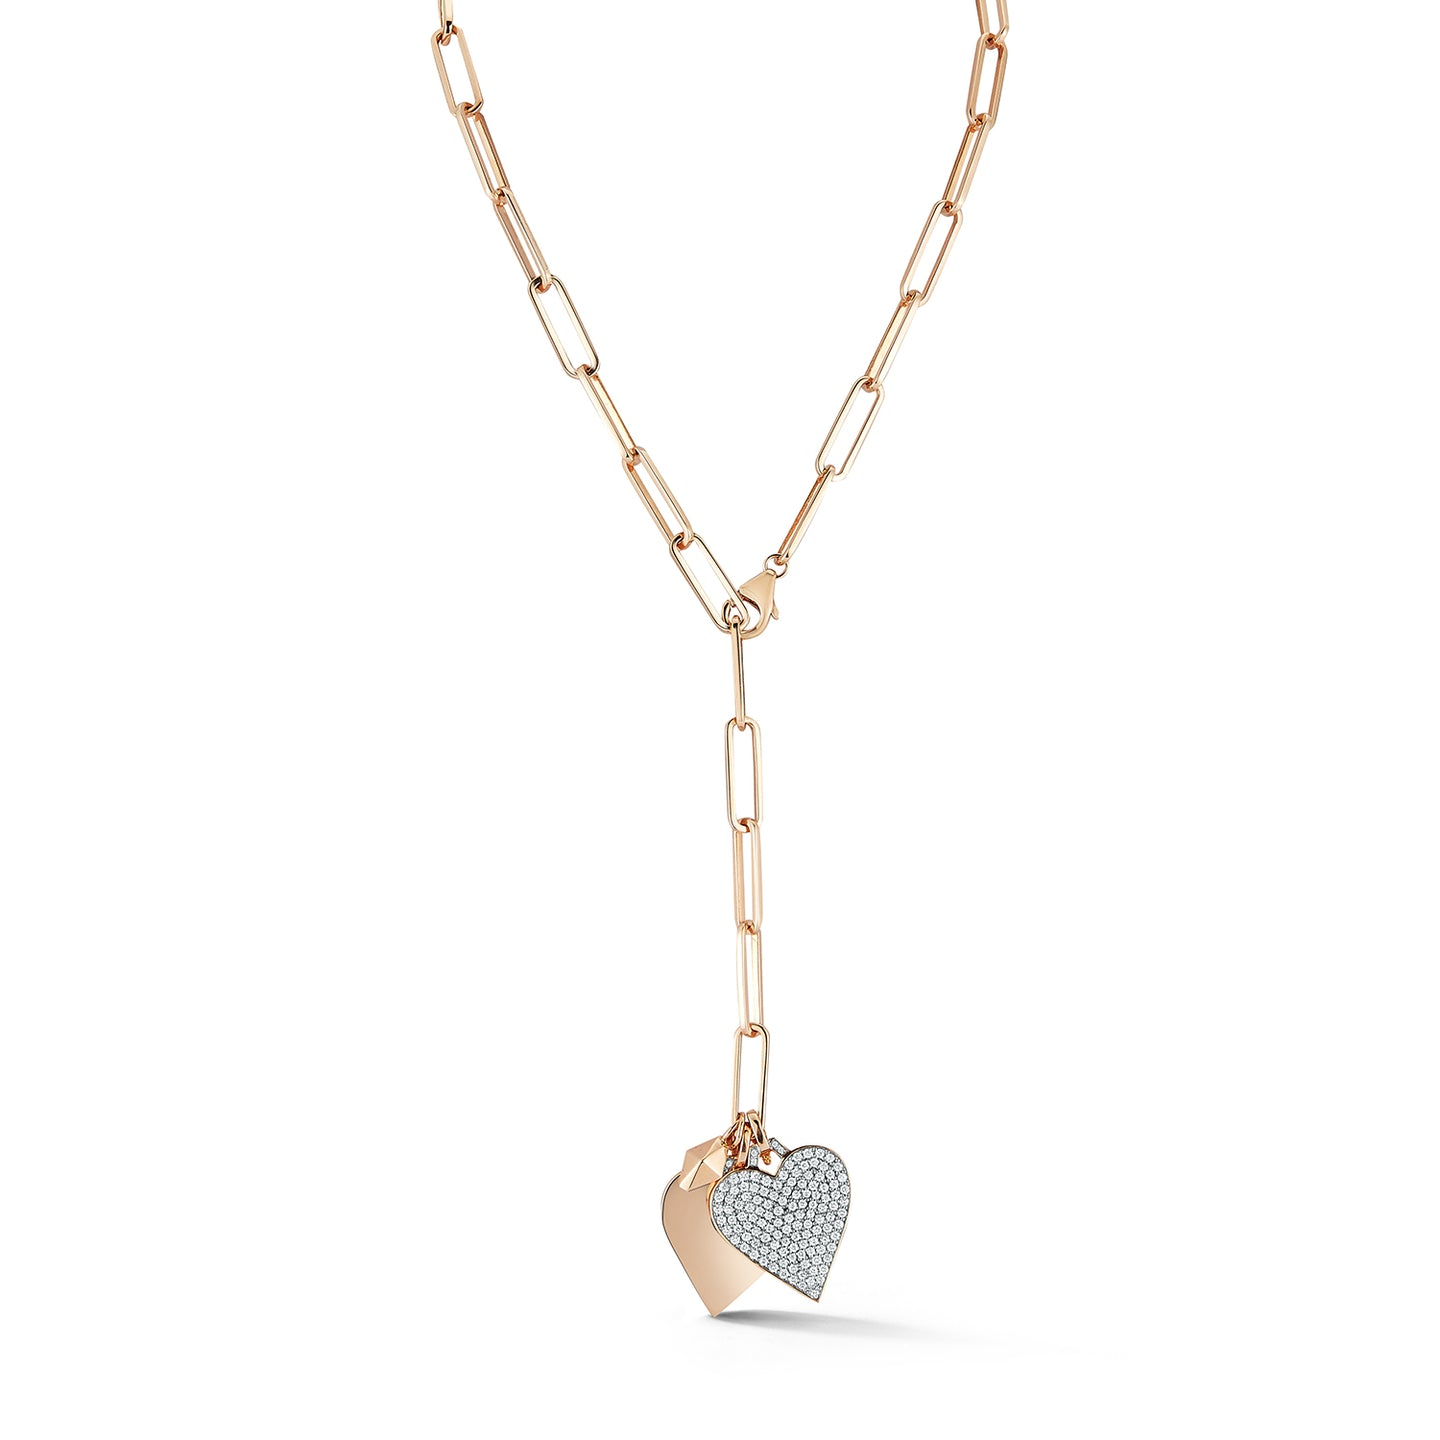 18K GOLD AND ALL DIAMOND HEART CHARM NECKLACE